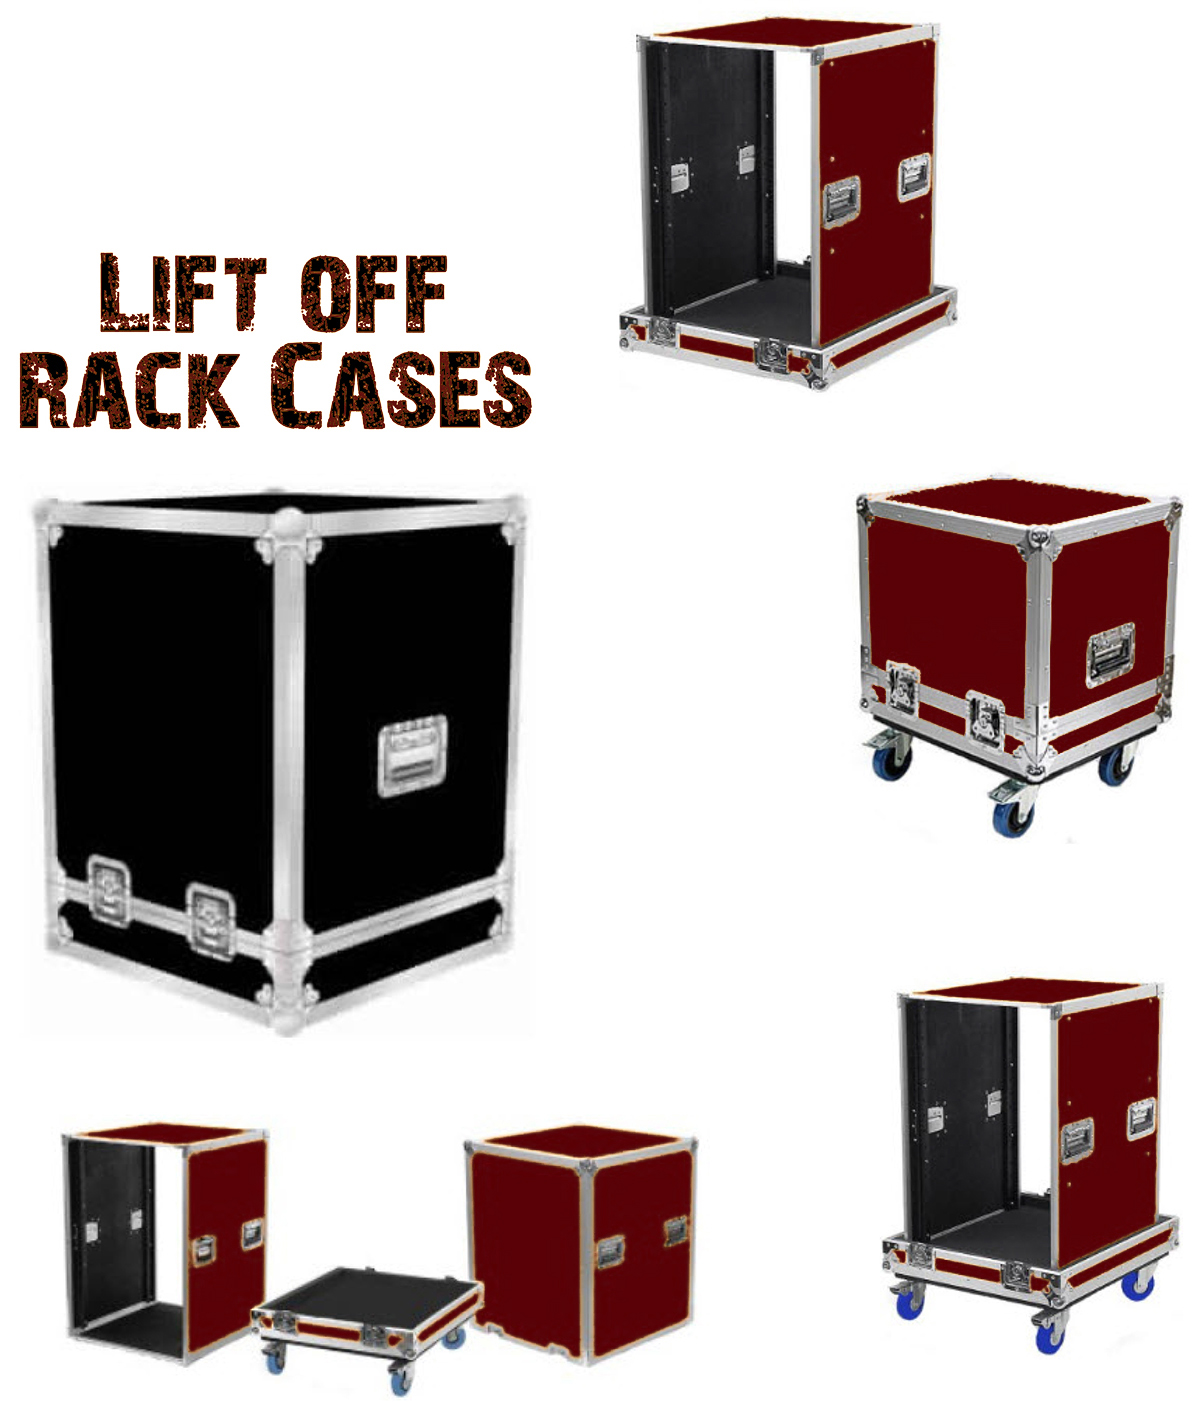 lift-off-rack1.jpg